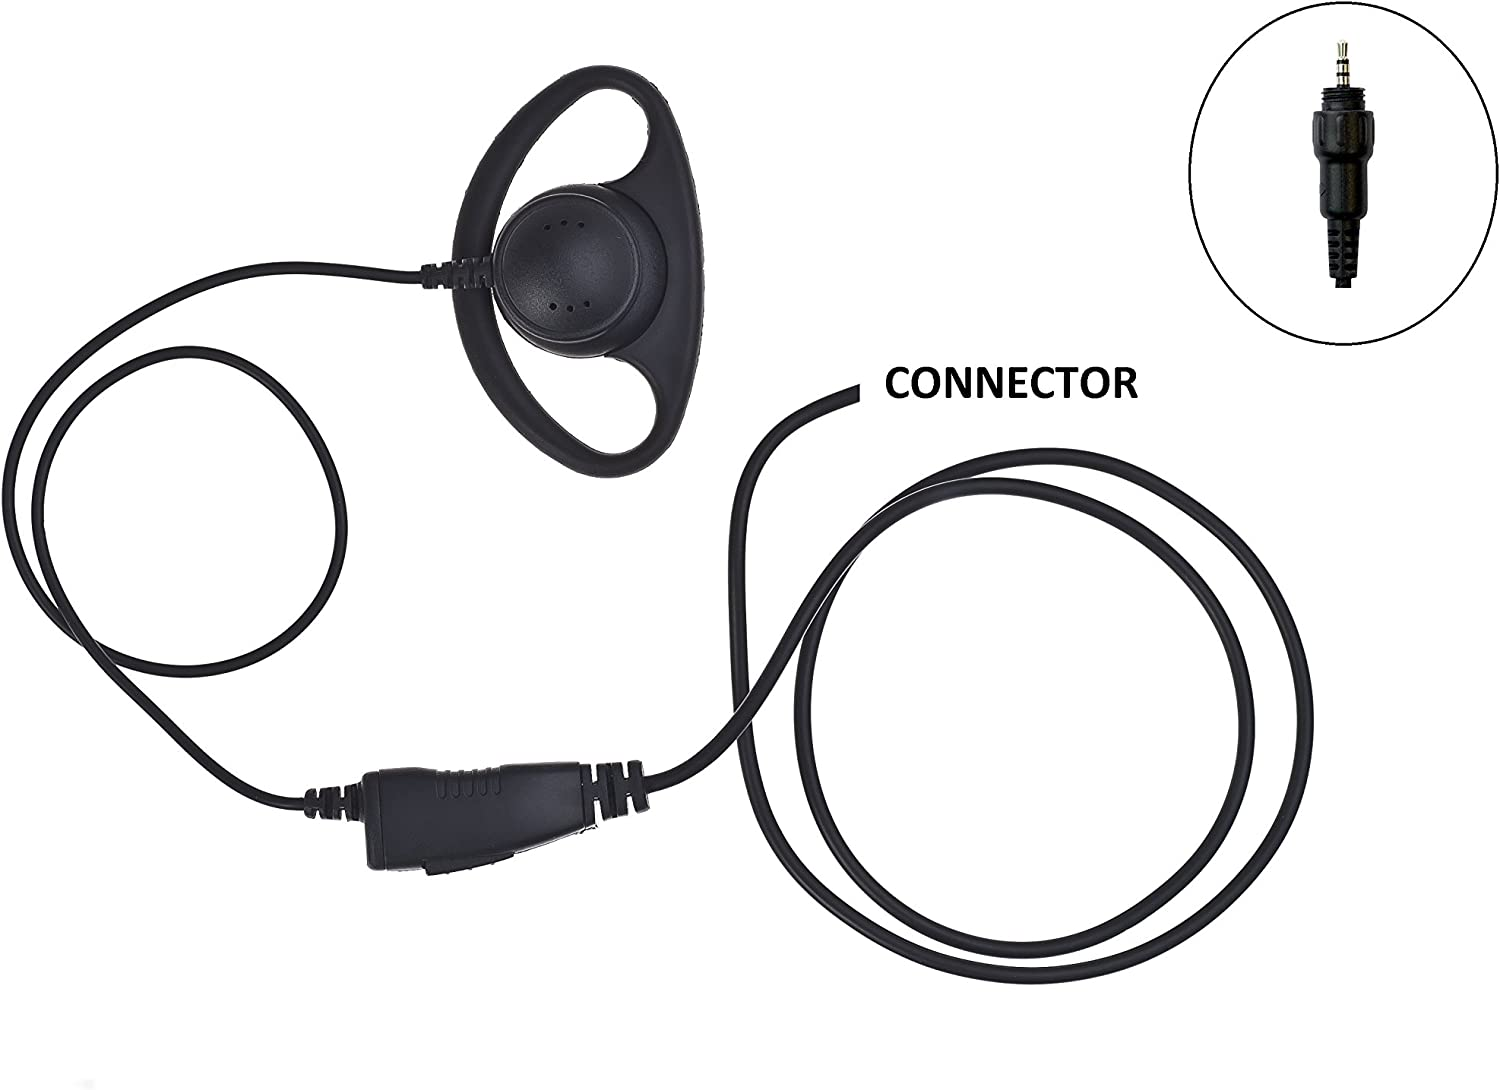 Impact 1-Wire Headset Earpiece with D-Ring for Motorola SL Series Radios